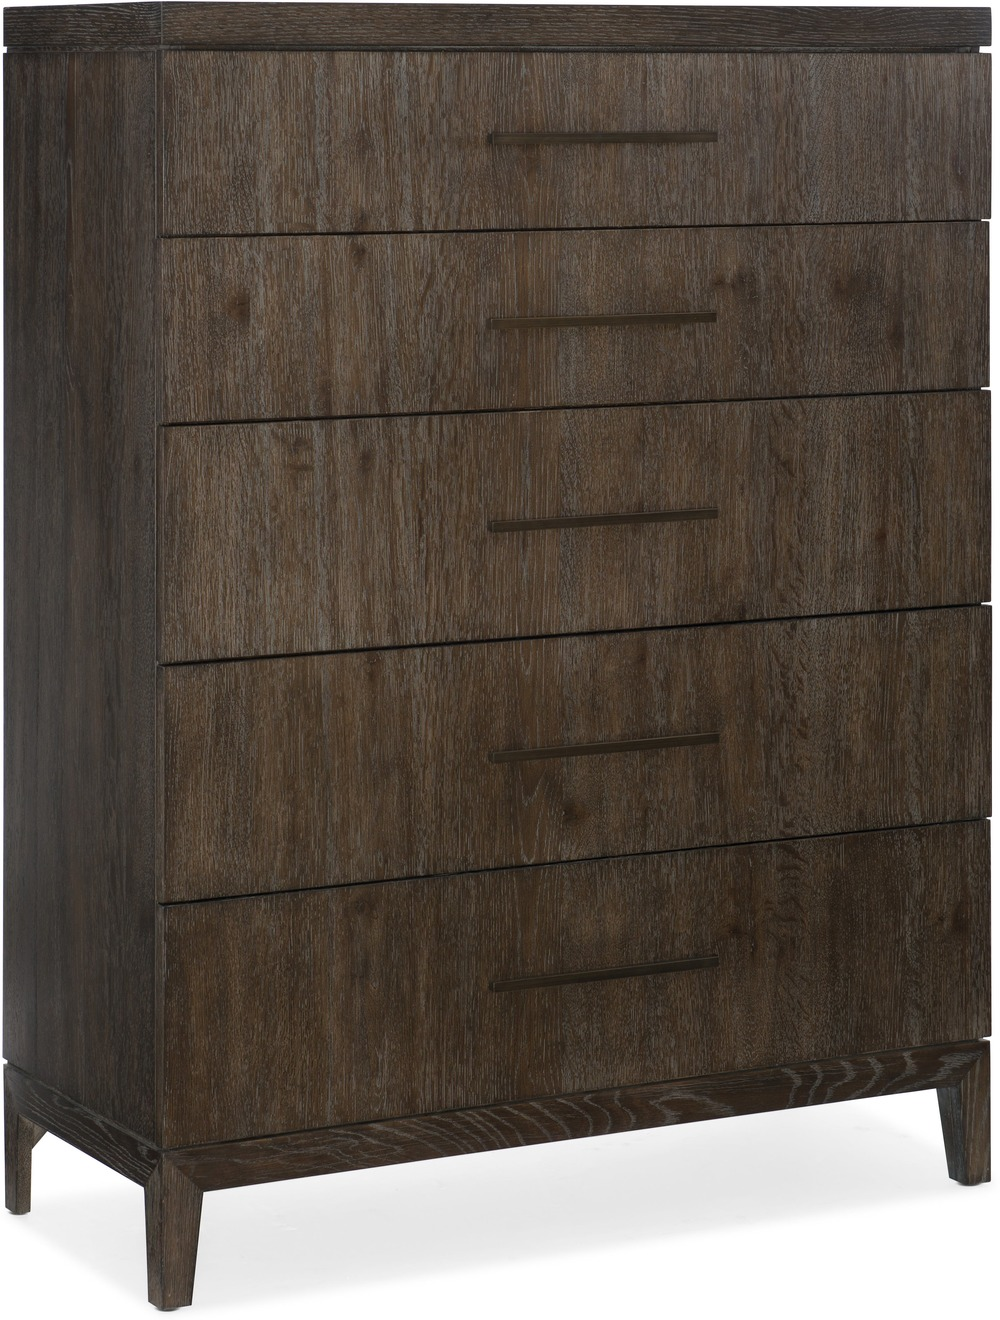 Hooker Furniture - Miramar Aventura Jackson Bedroom Set